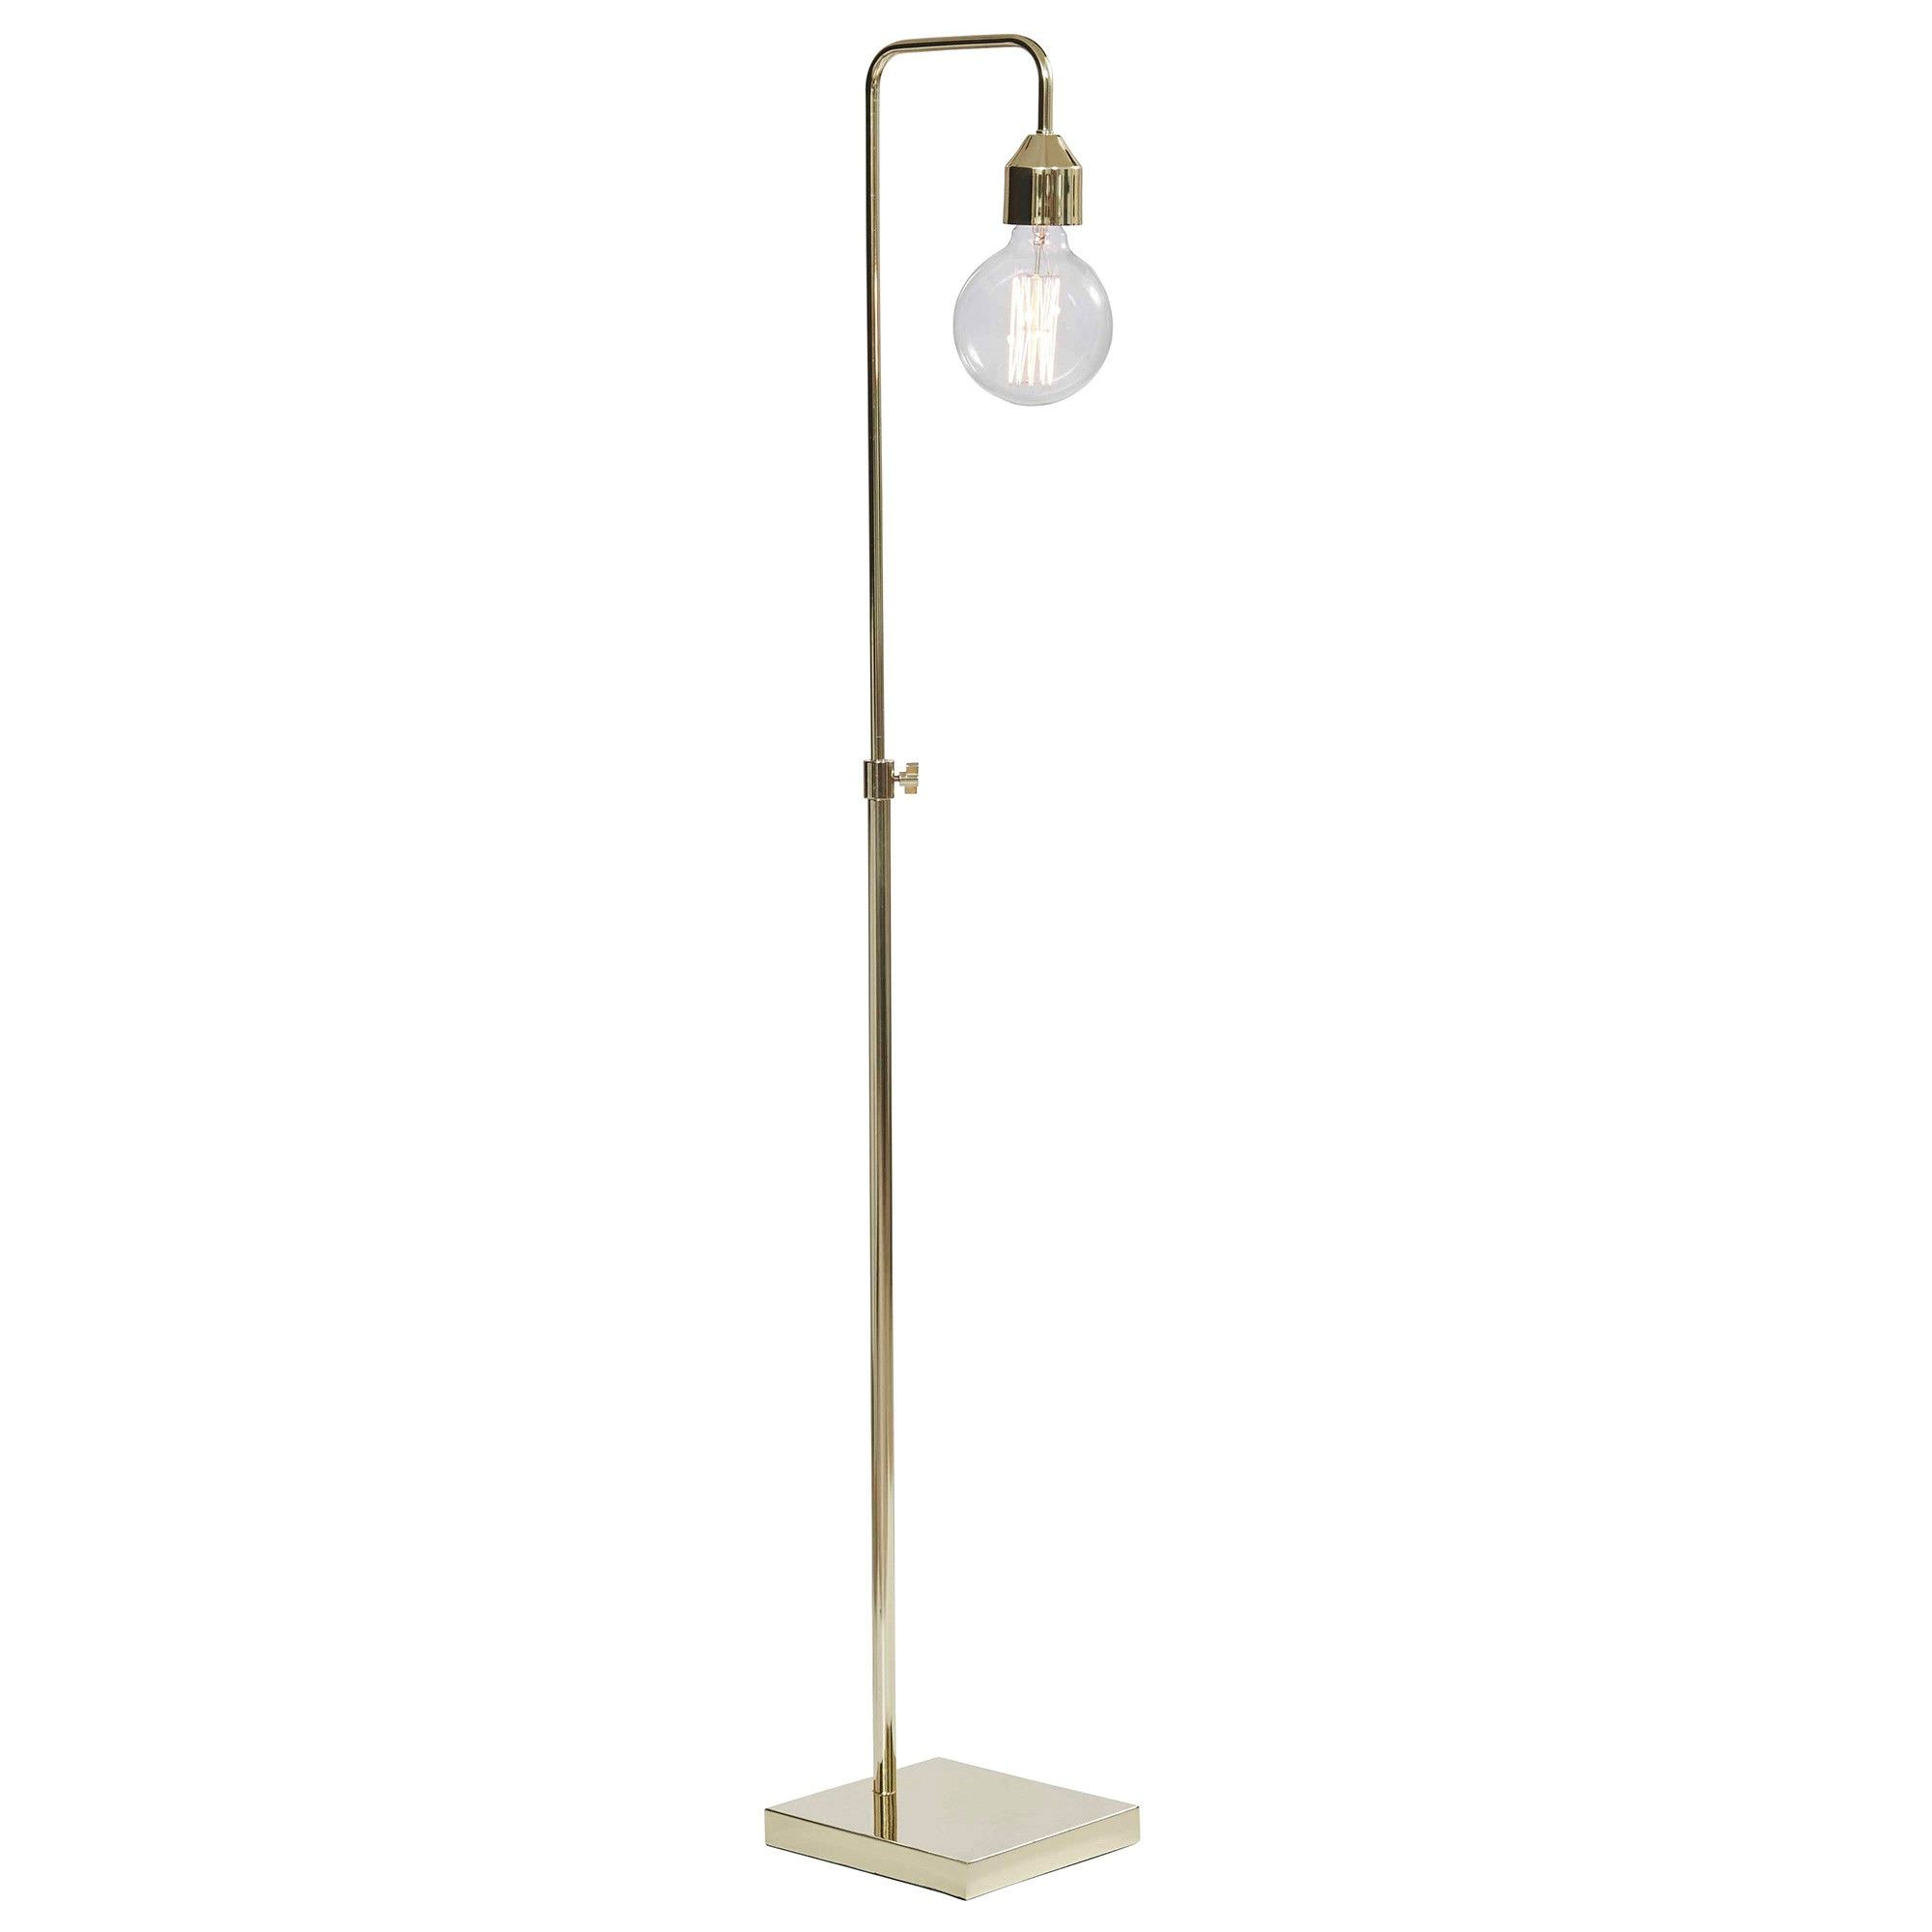 second off for floor decor used metal lamp sale hand